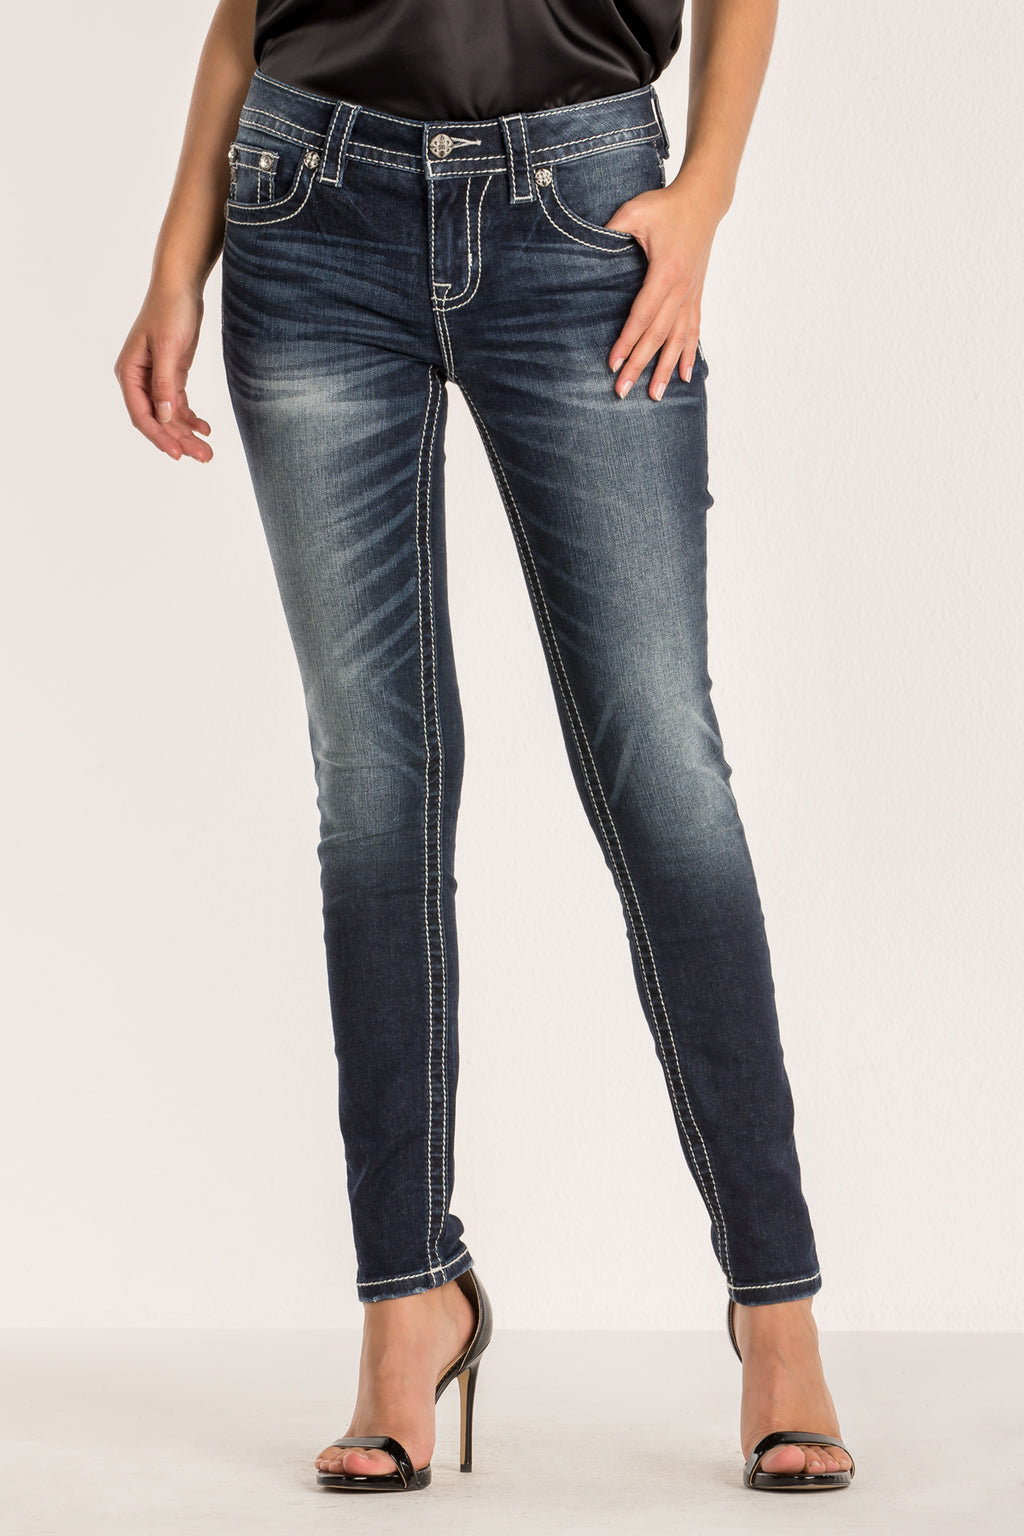 533a8af2b0c3f CROSS THE LINES SKINNY JEAN - front